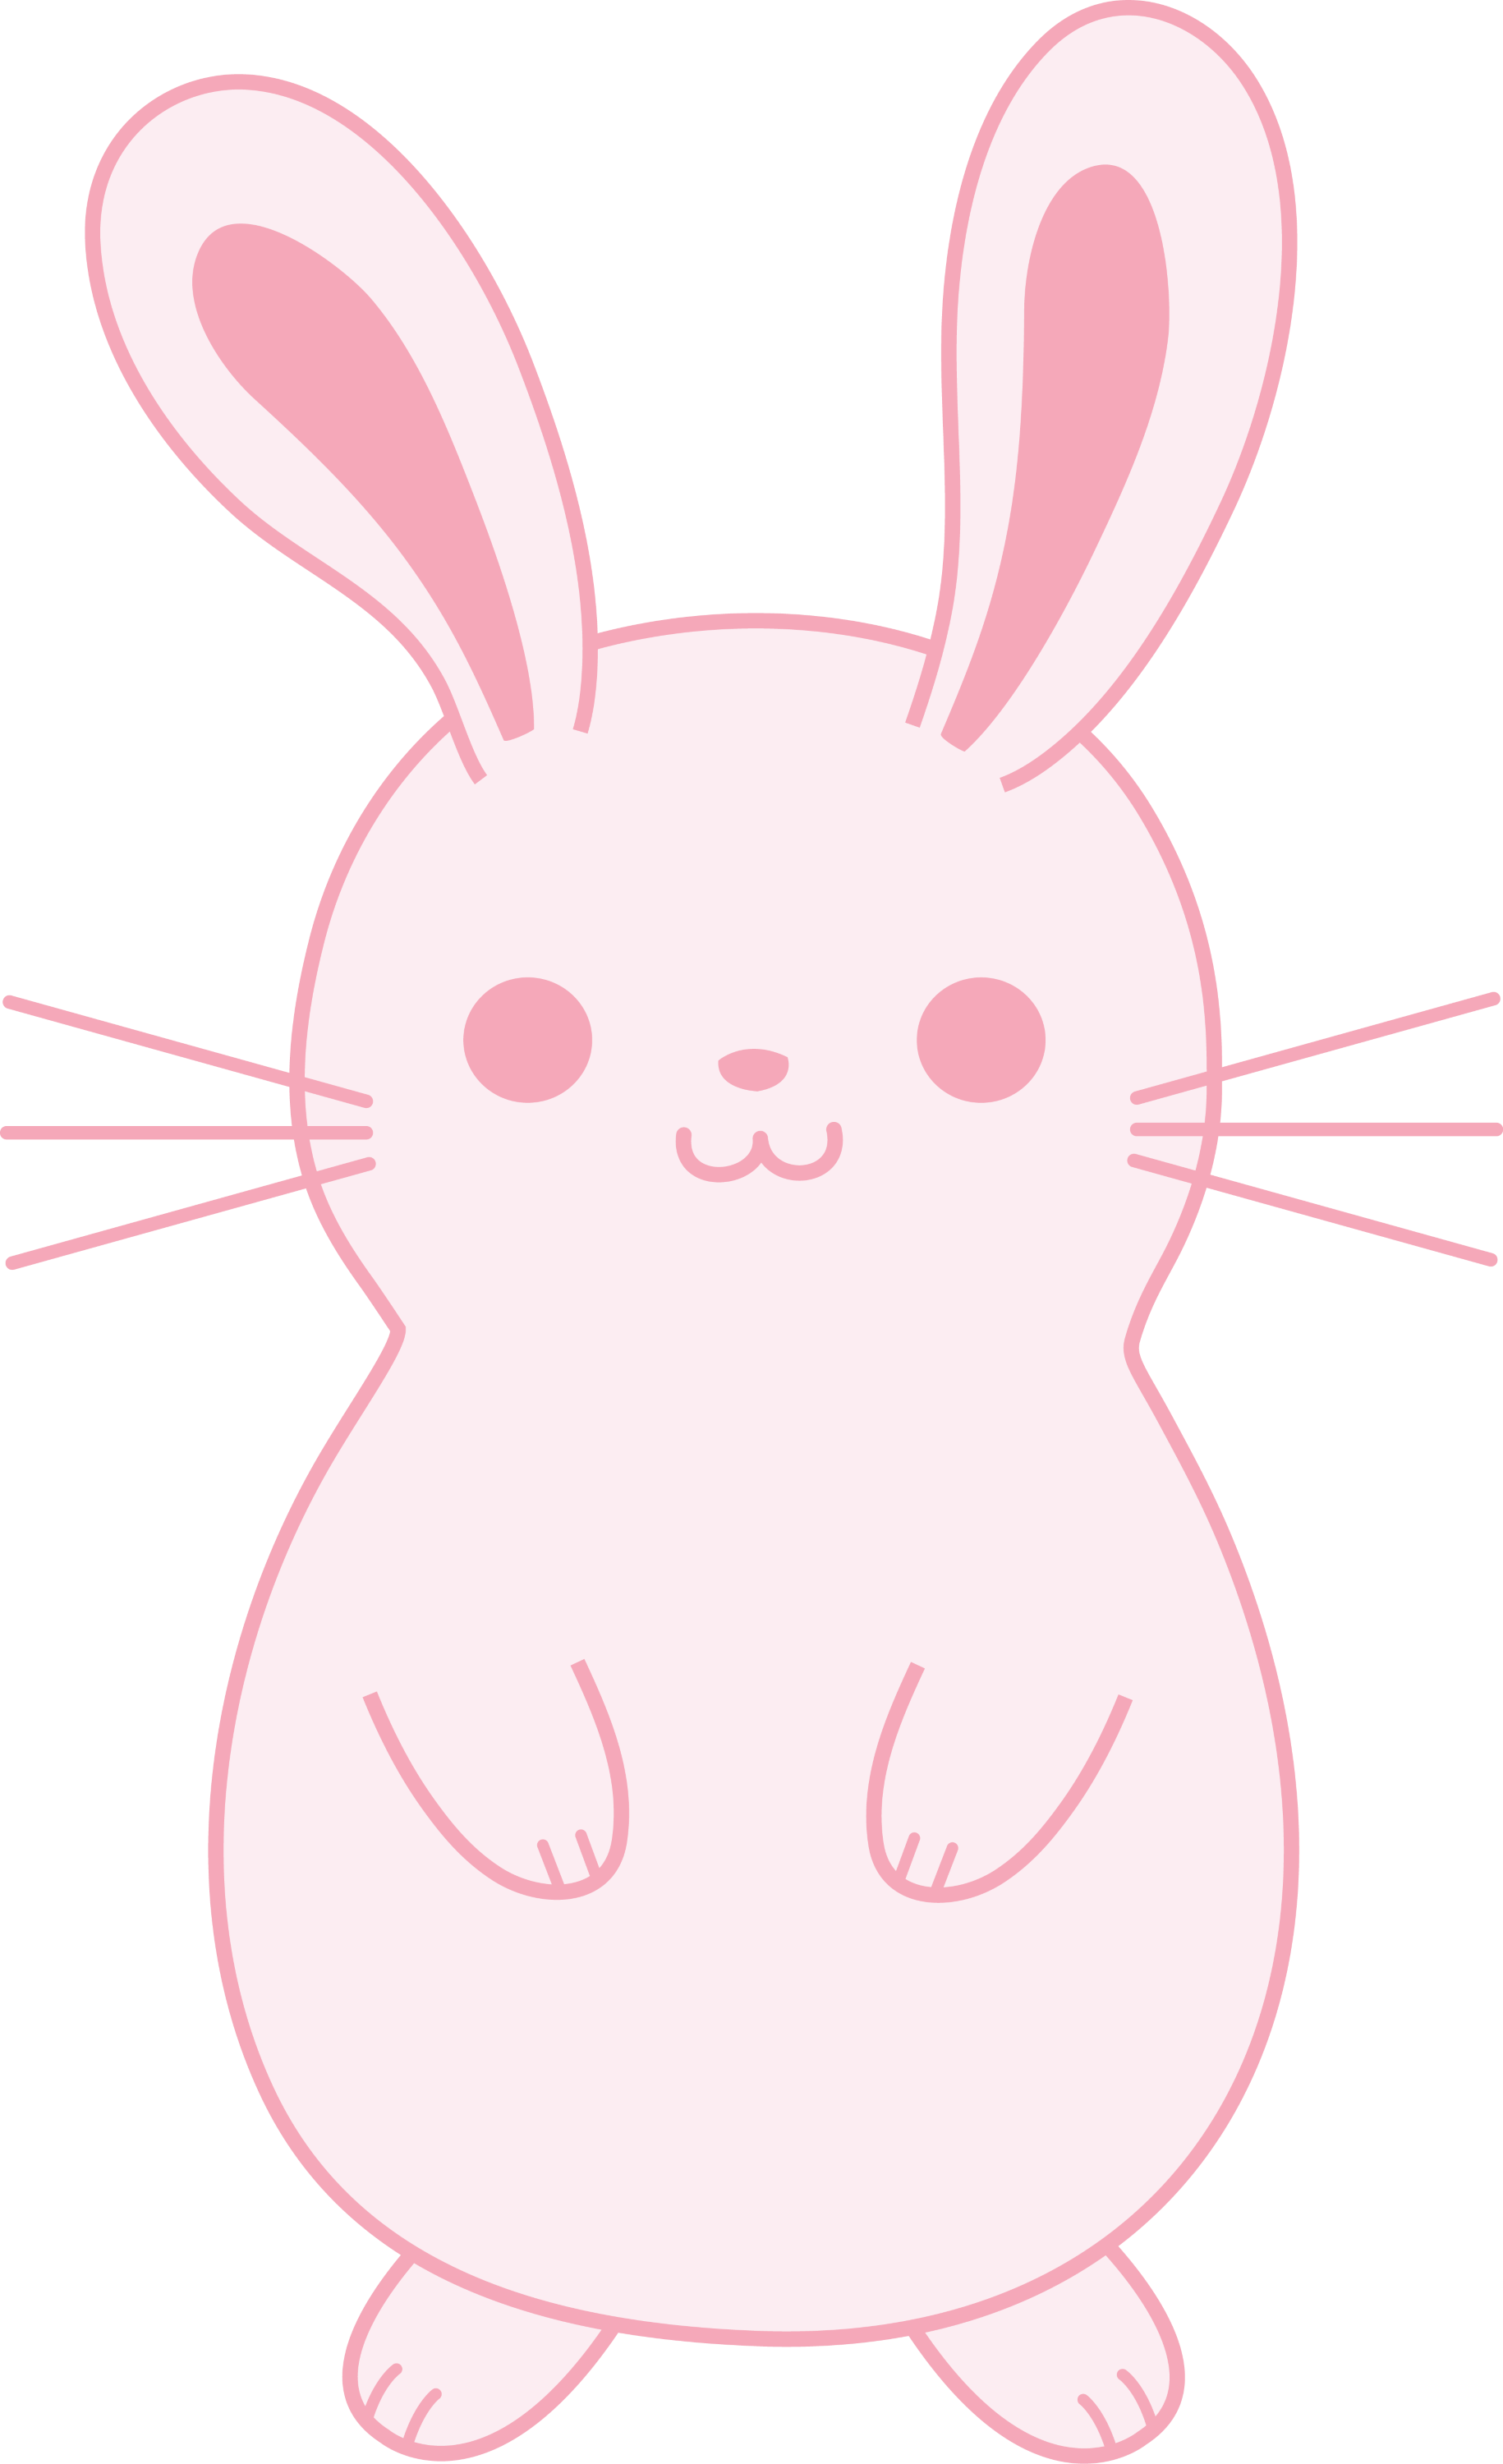 how to draw a cute fluffy bunny